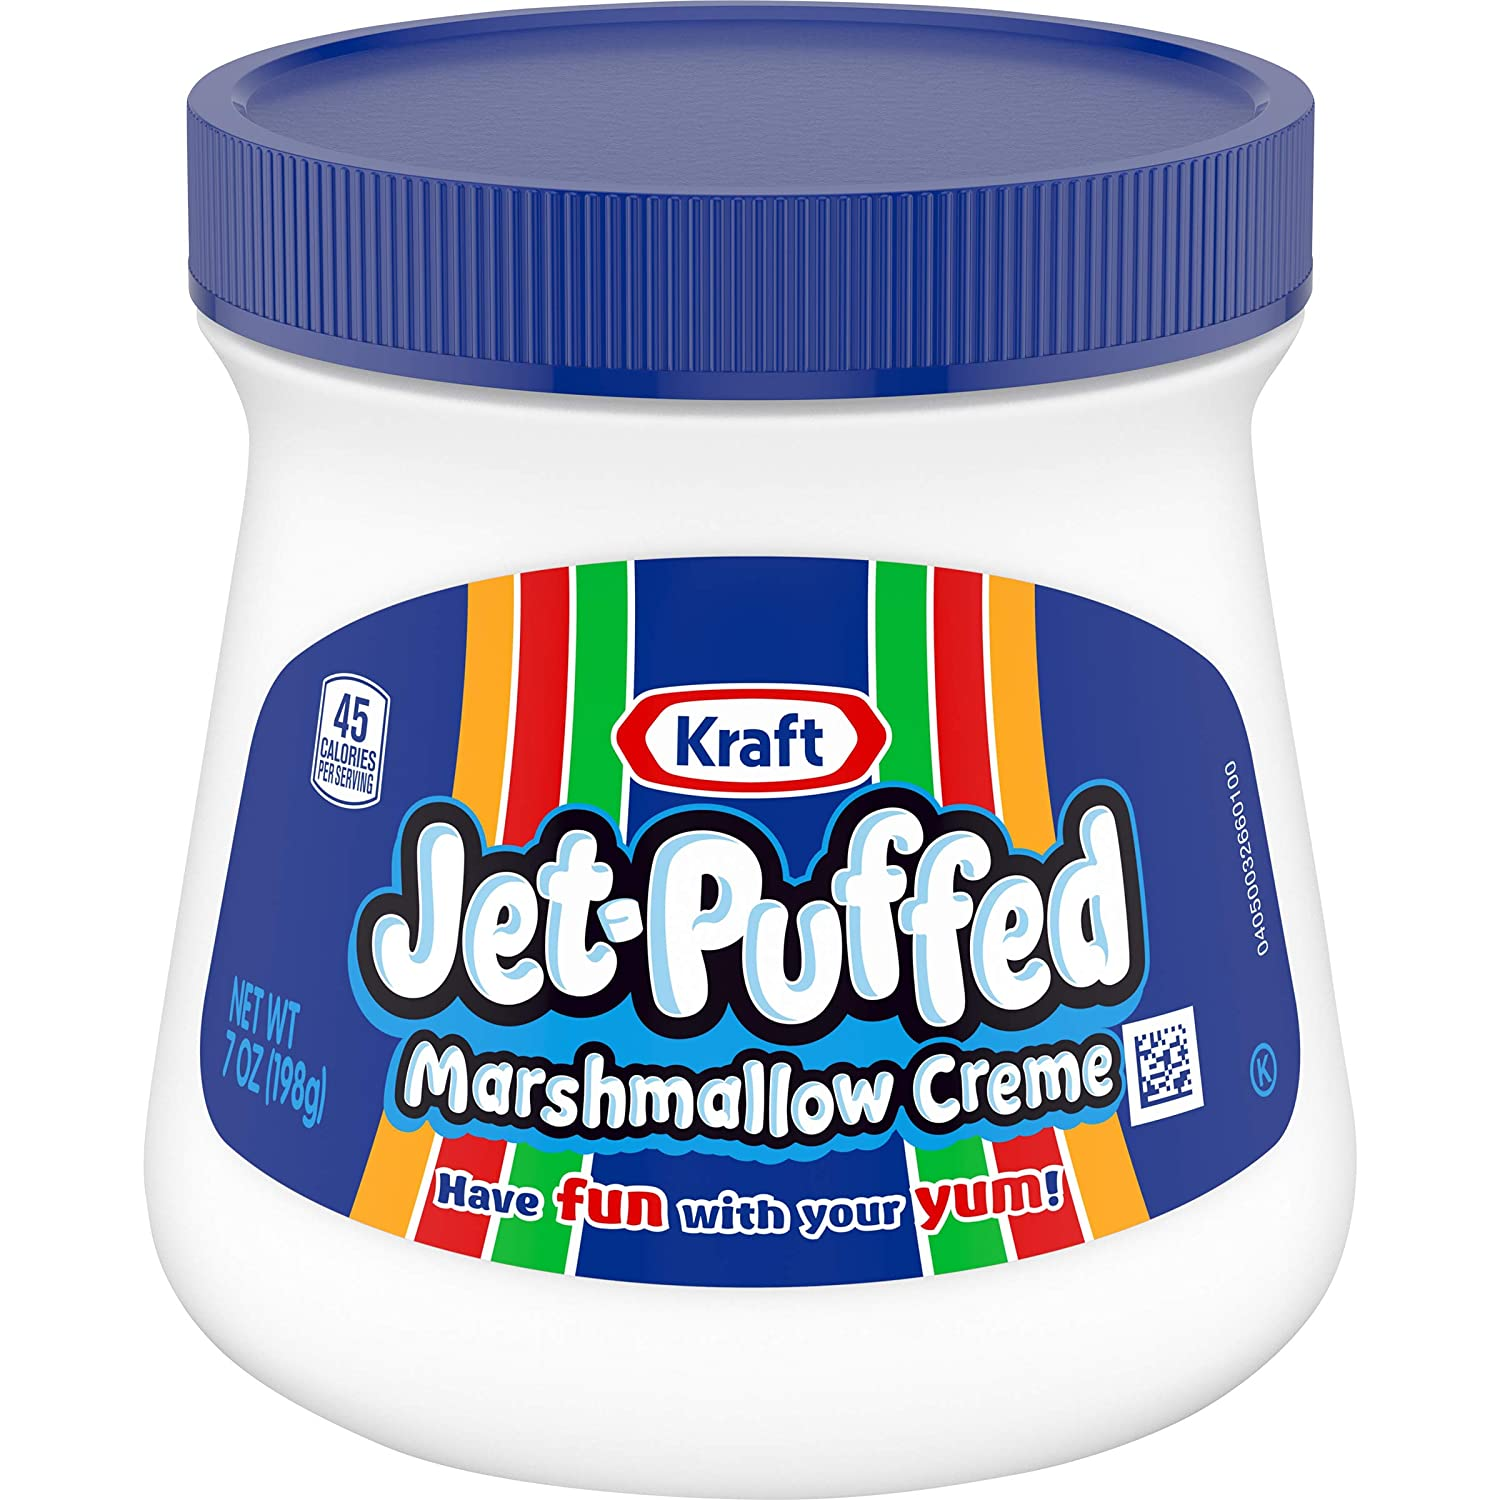 Jet-Puffed Marshmallow Creme Spread (7 oz Jar)